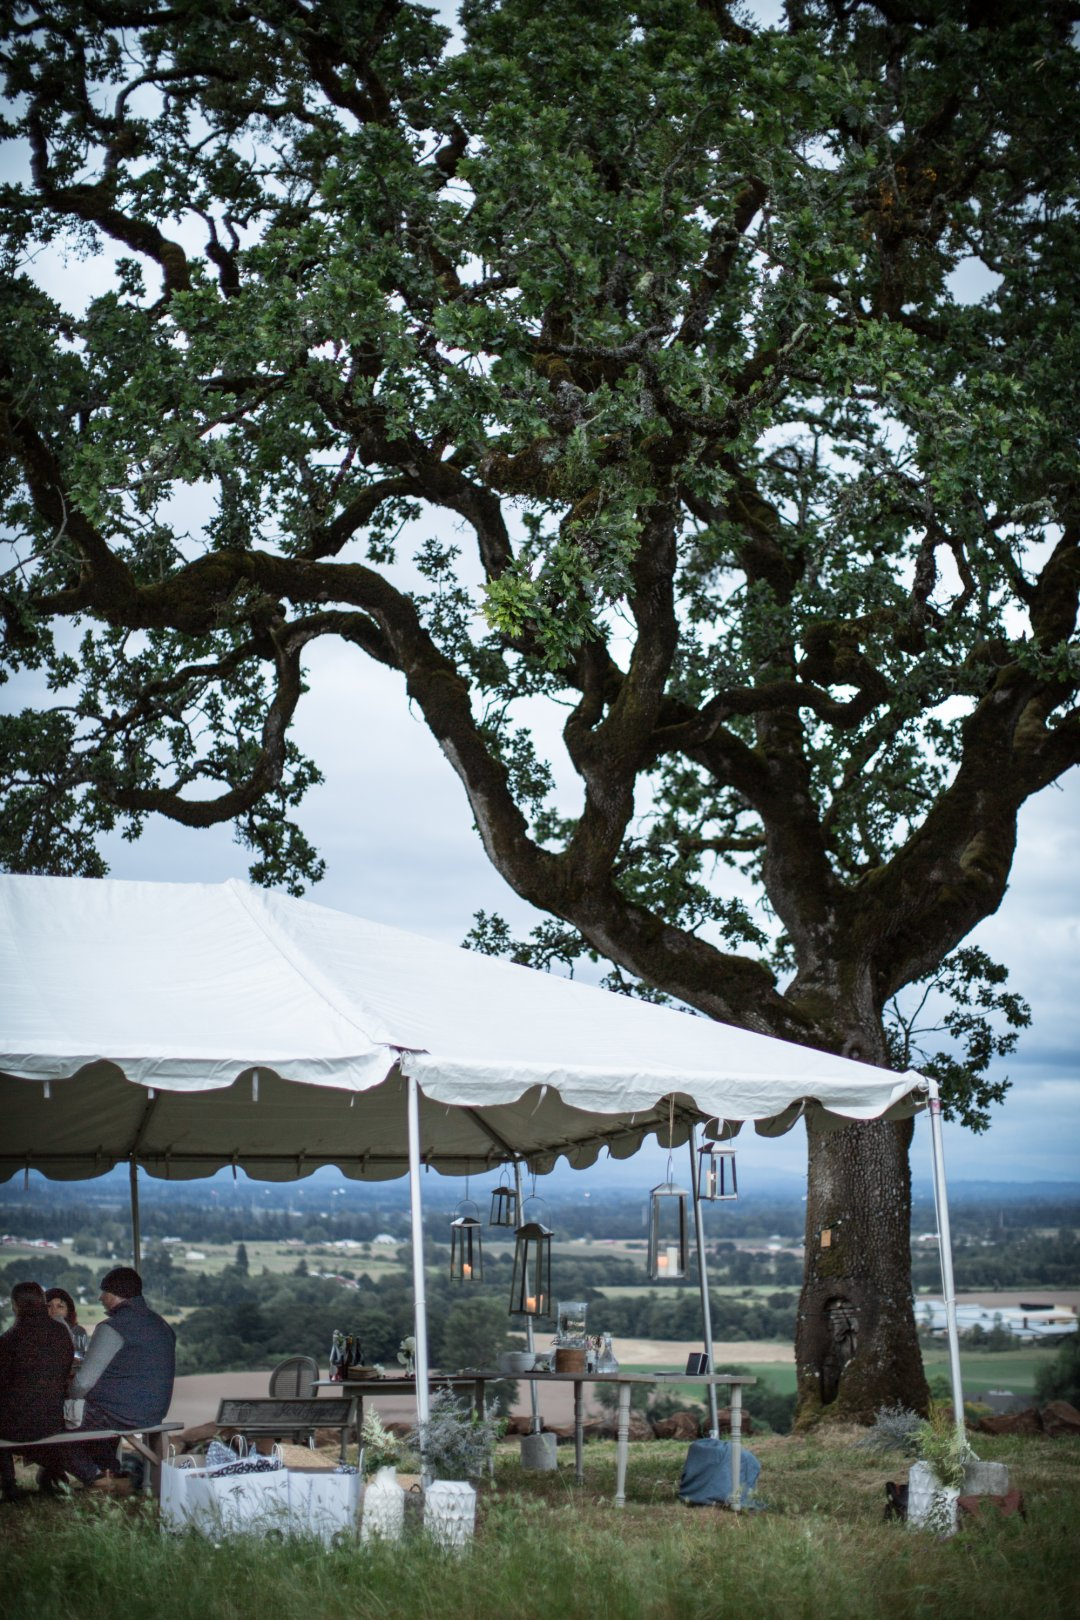 Large Oak tree next to tent